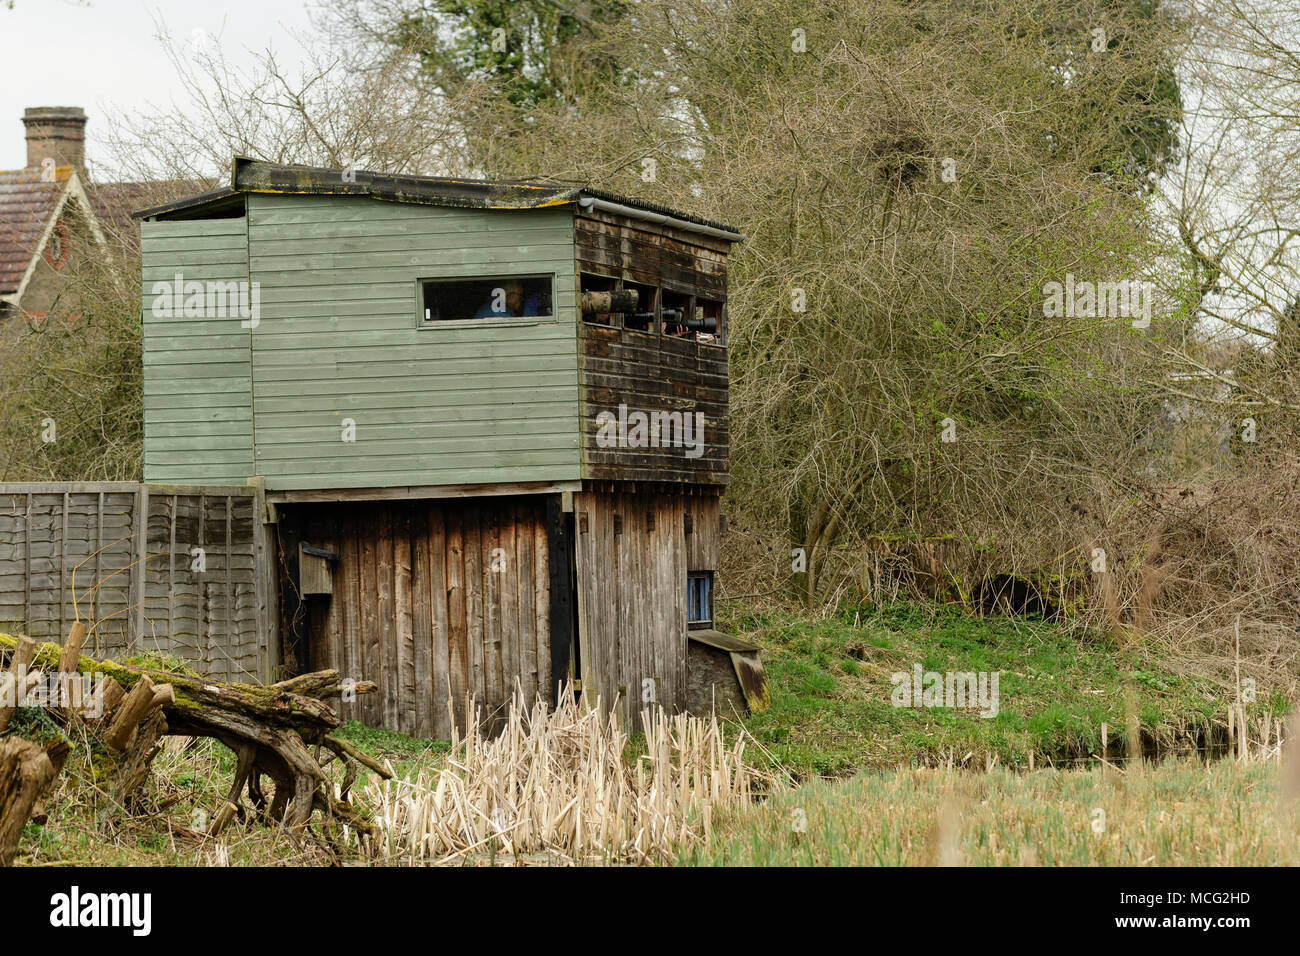 Kingfisher Hide with wildlife photographer's lenses in Rye Meads RSPB nature reserve, Hoddesdon, England - Stock Image